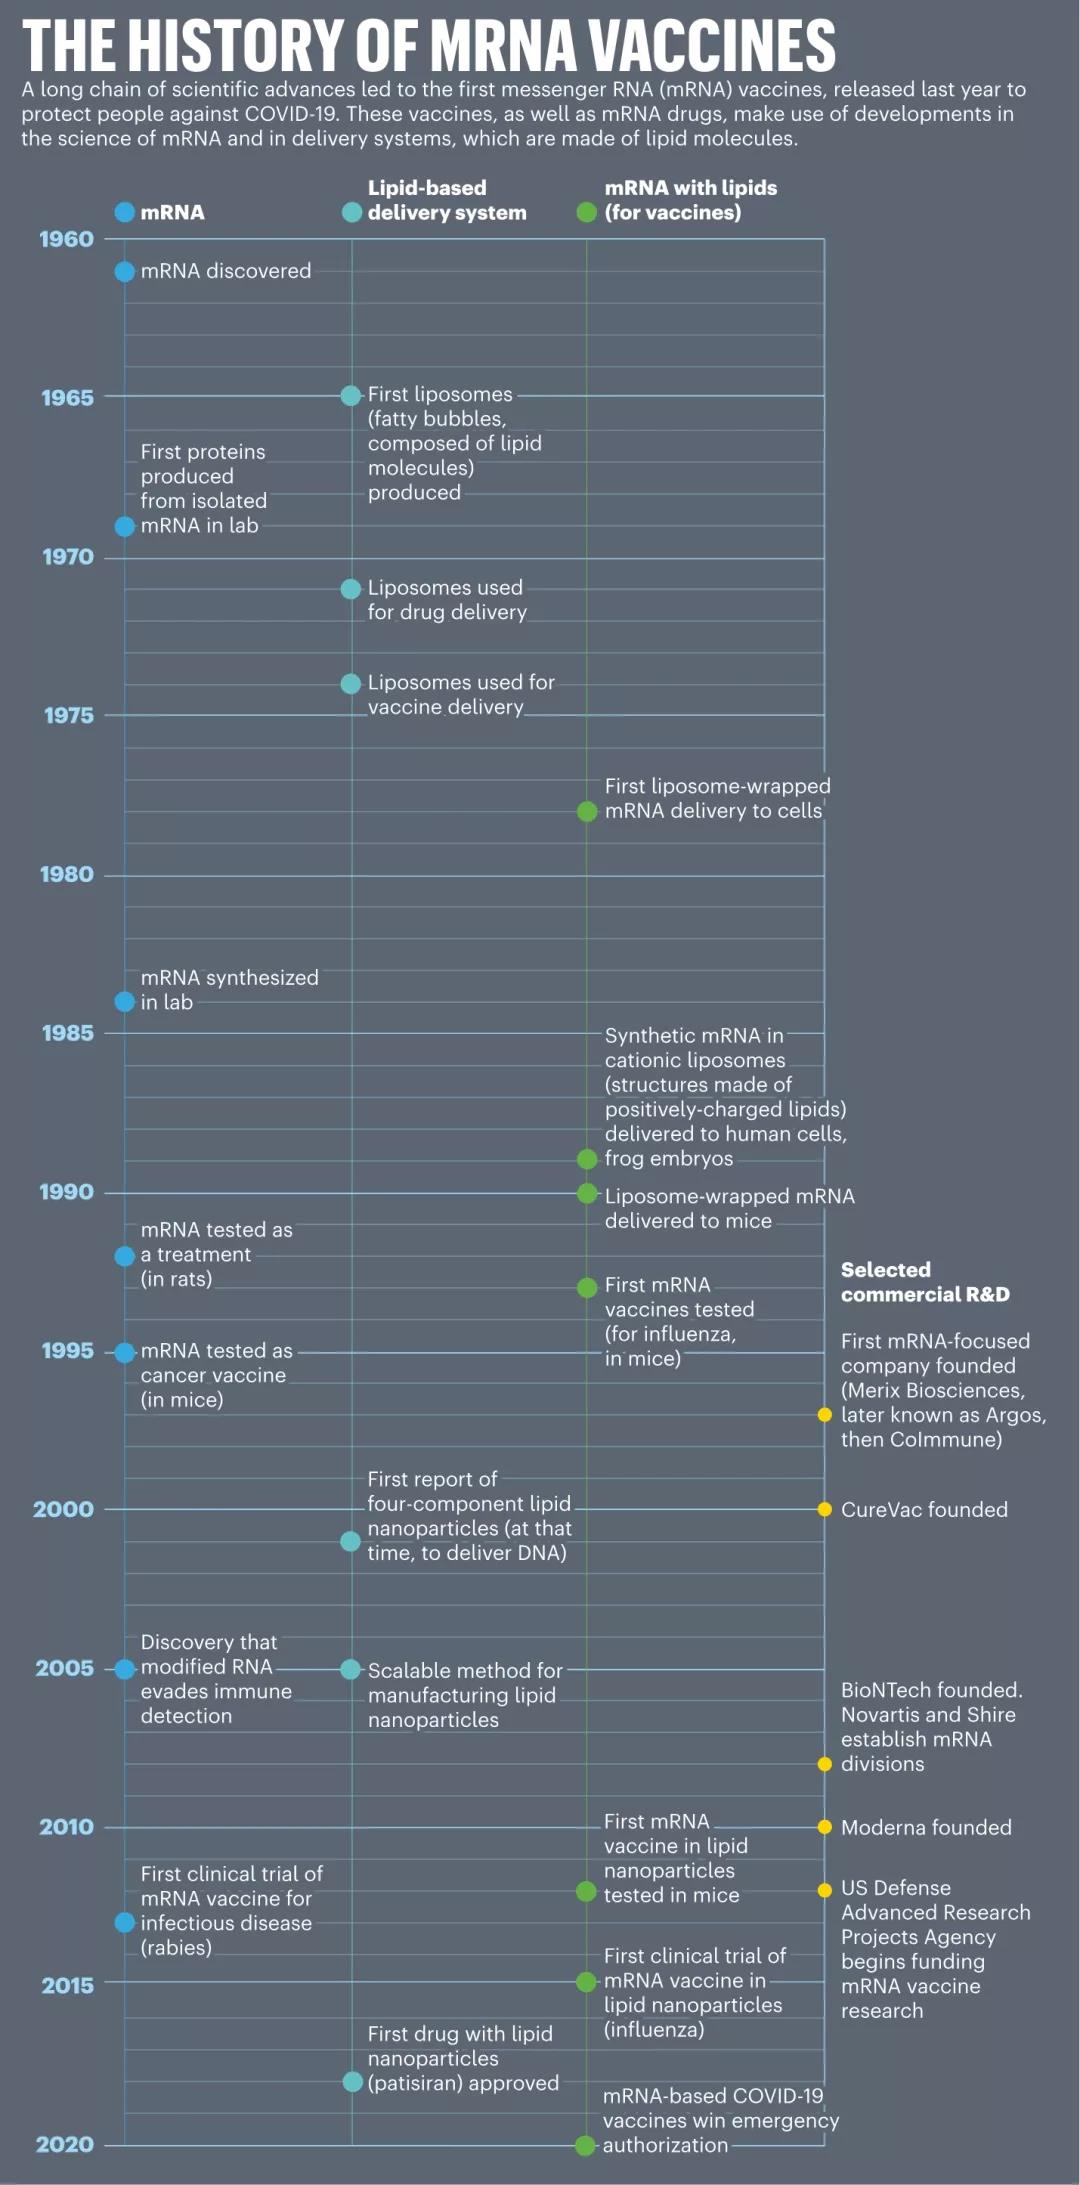 The tortuous road and complicated development history of mRNA vaccines